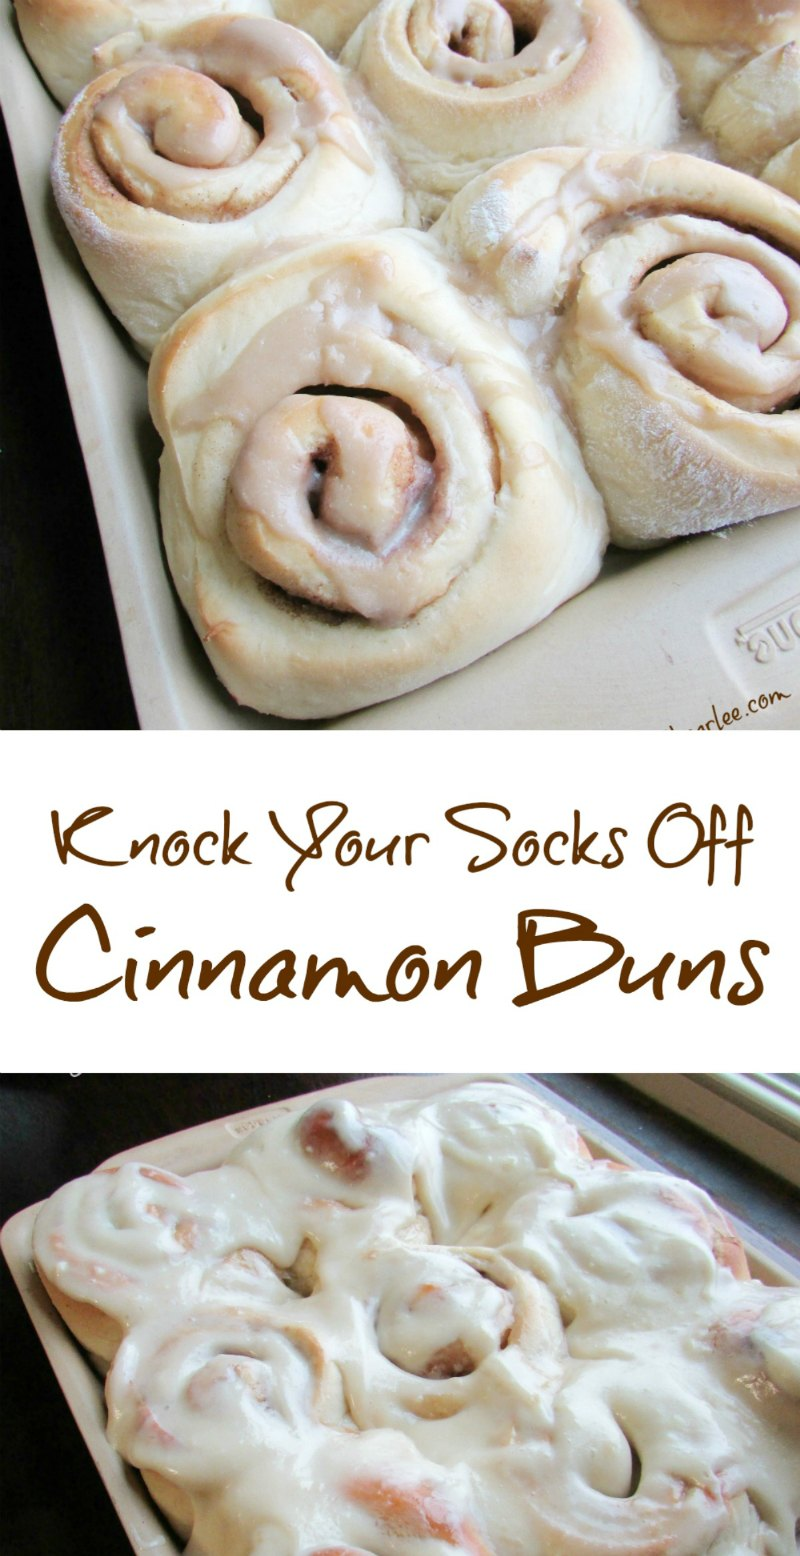 These cinnamon buns are mind blowing! The dough makes the softest, gooiest, most delicious cinnamon roll you've ever had!